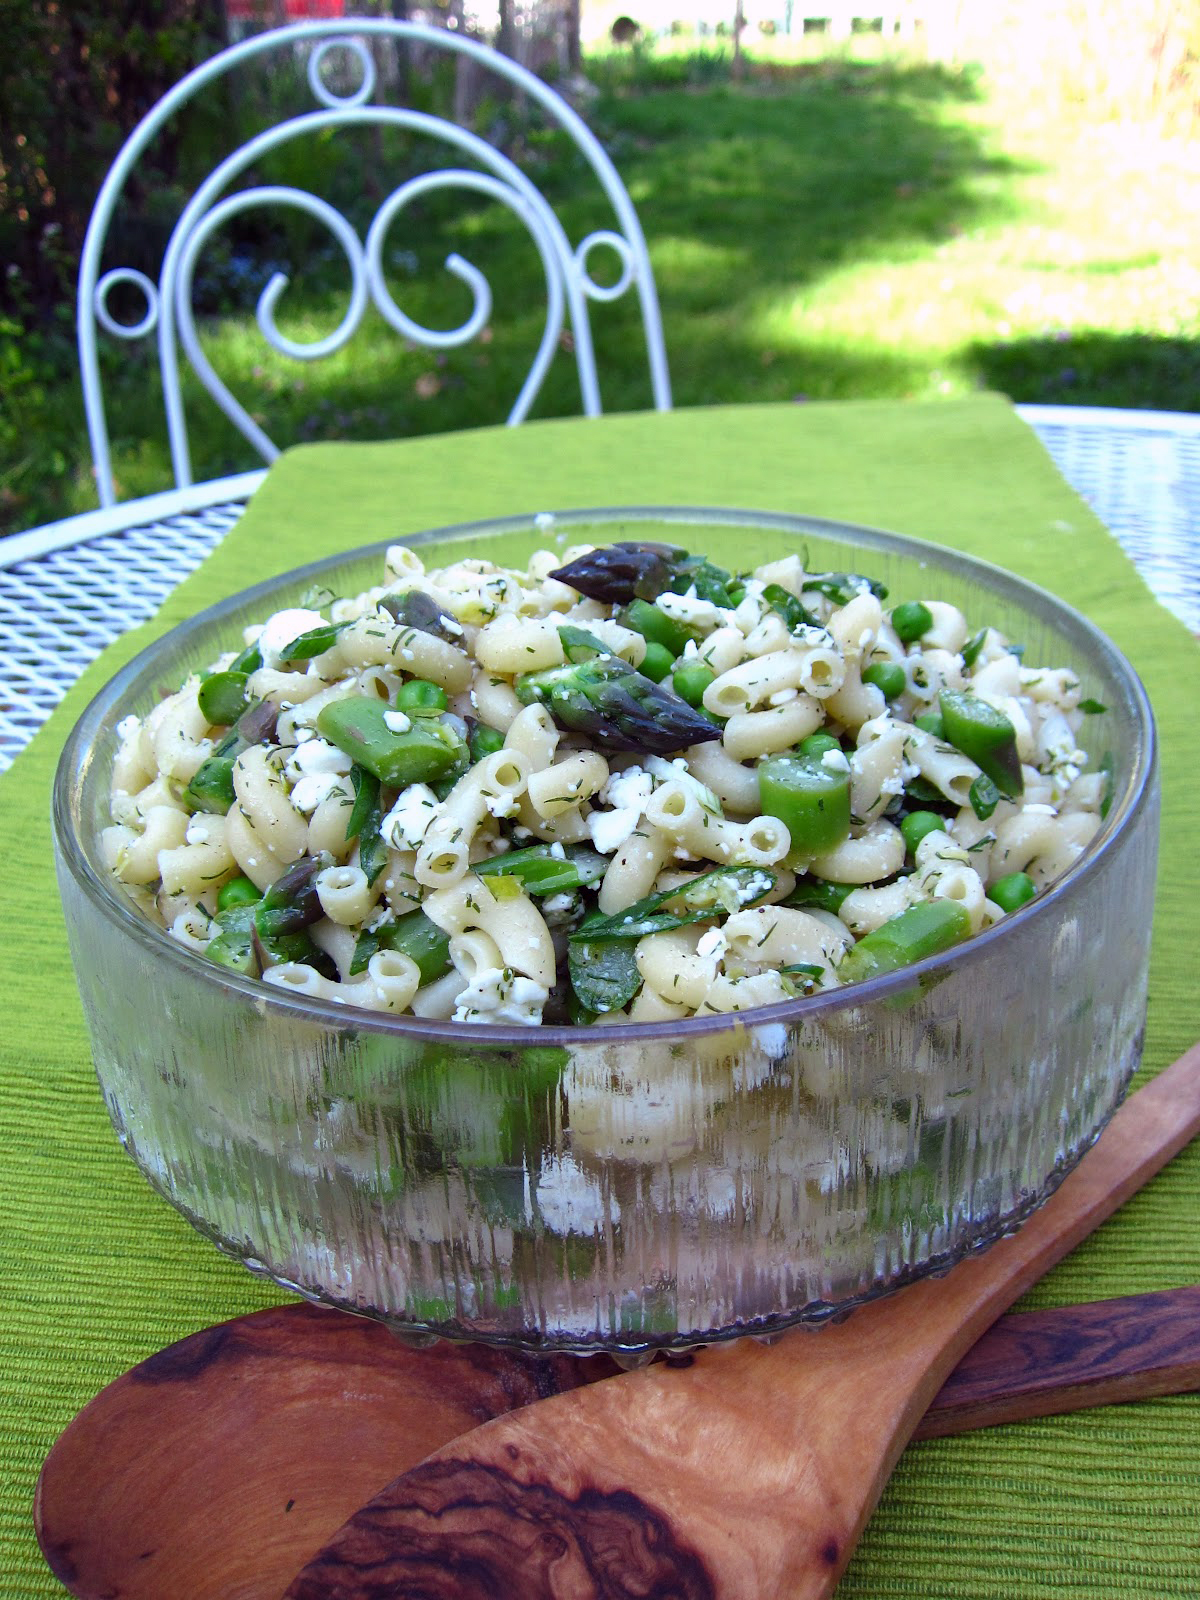 Bowl of asparagus pasta salad with lemon and dill